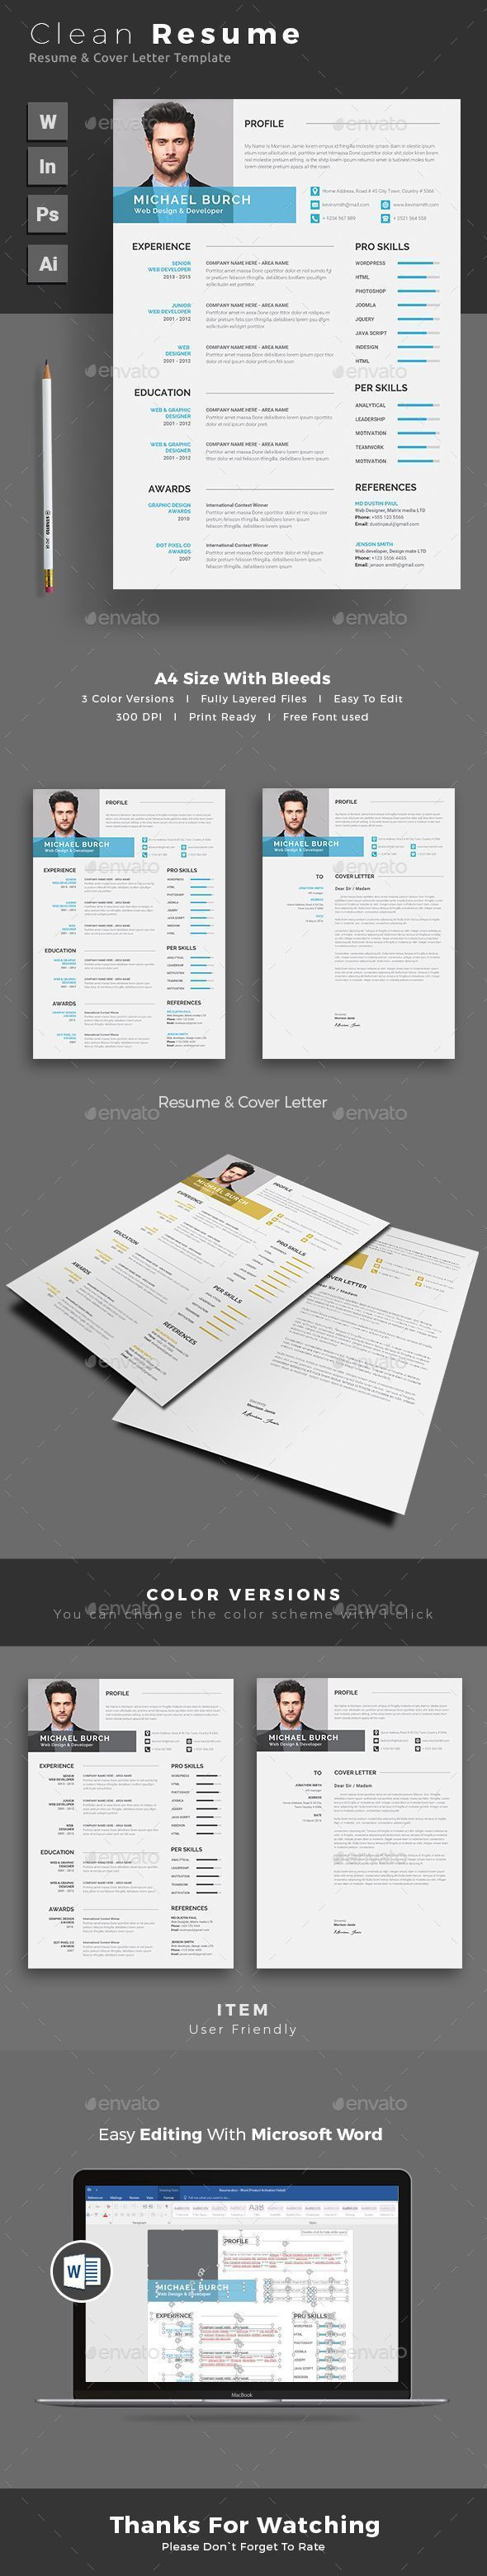 Black u0026 White CV Resume Template